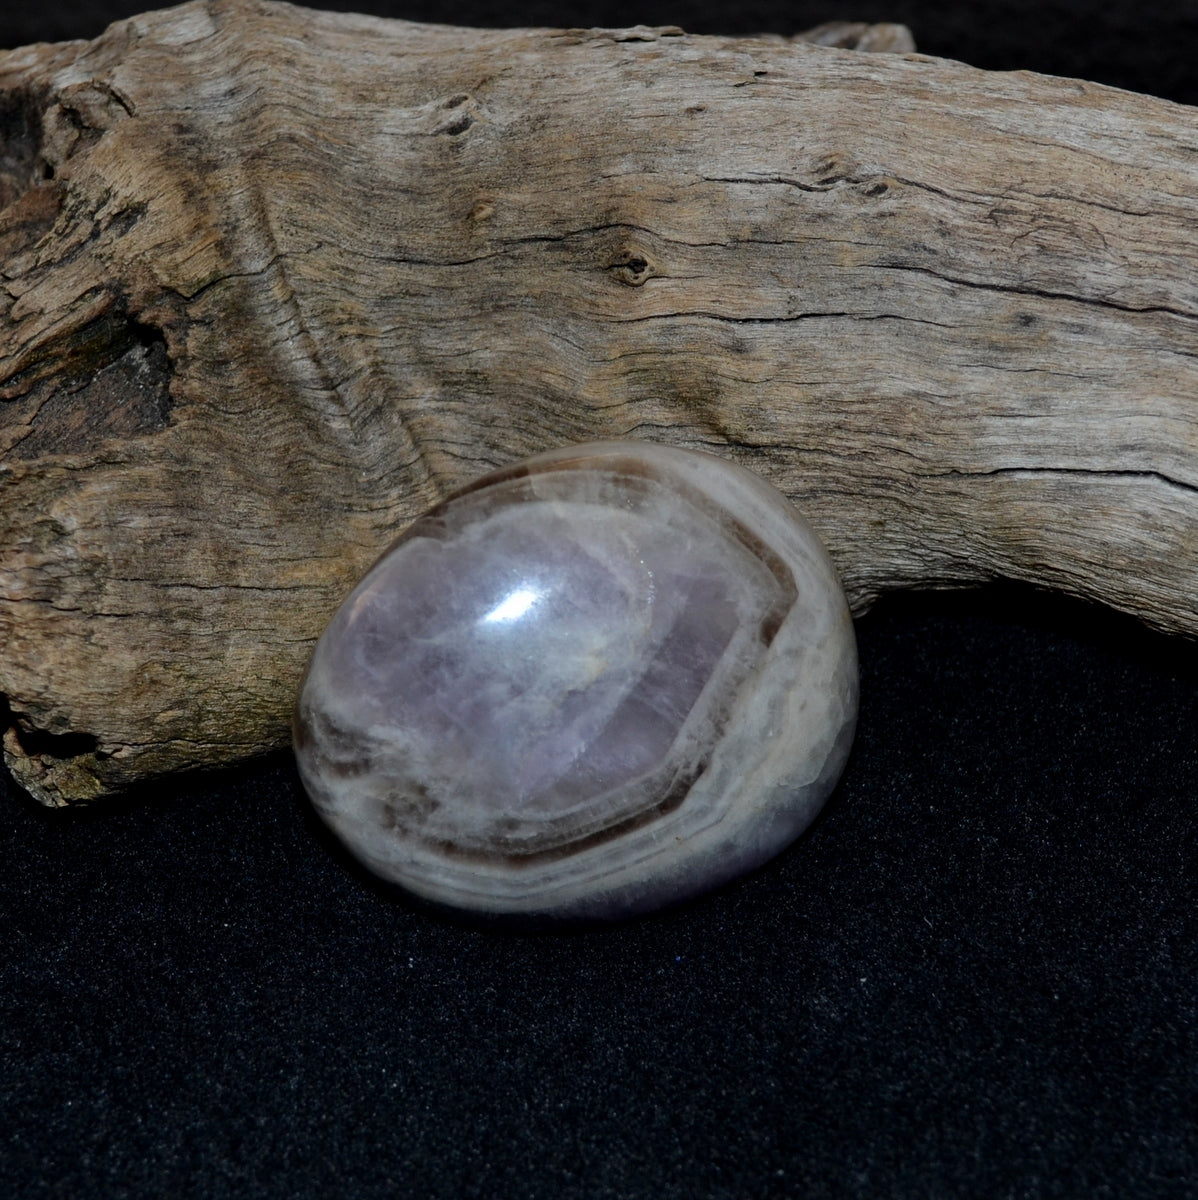 Banded Smoky Amethyst - Pure Intuition Grounding - Buy Now at Illiom Crystals - Afterpay Available